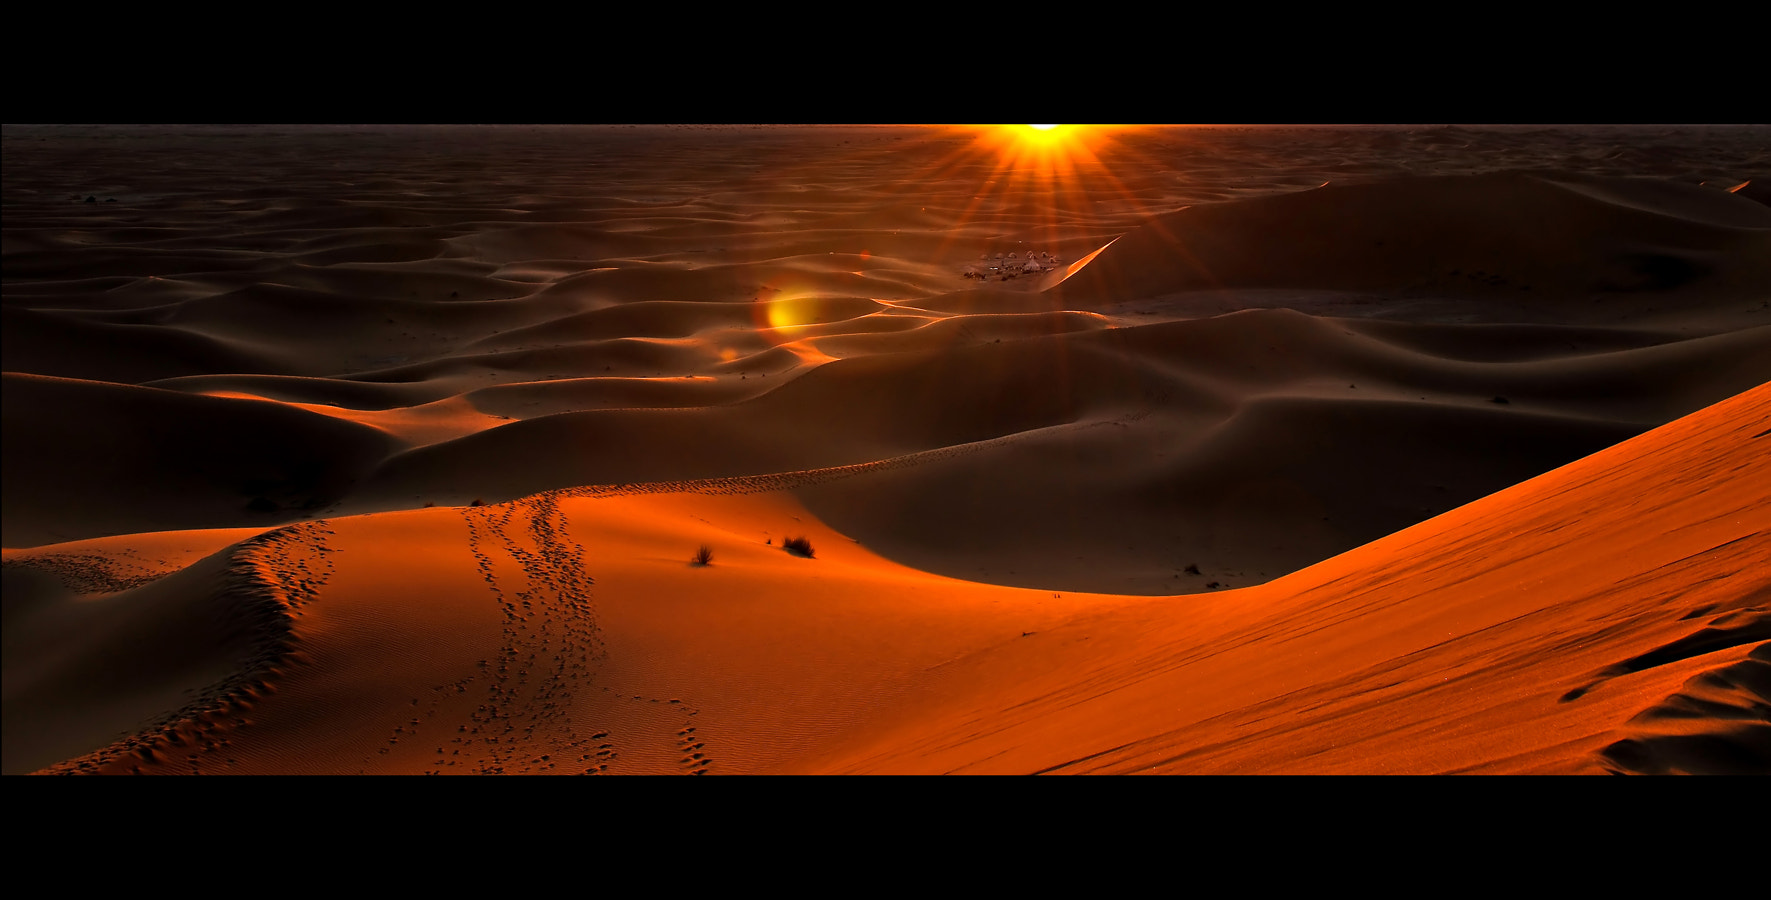 Photograph * Sahara sunrise * by clement jousse on 500px